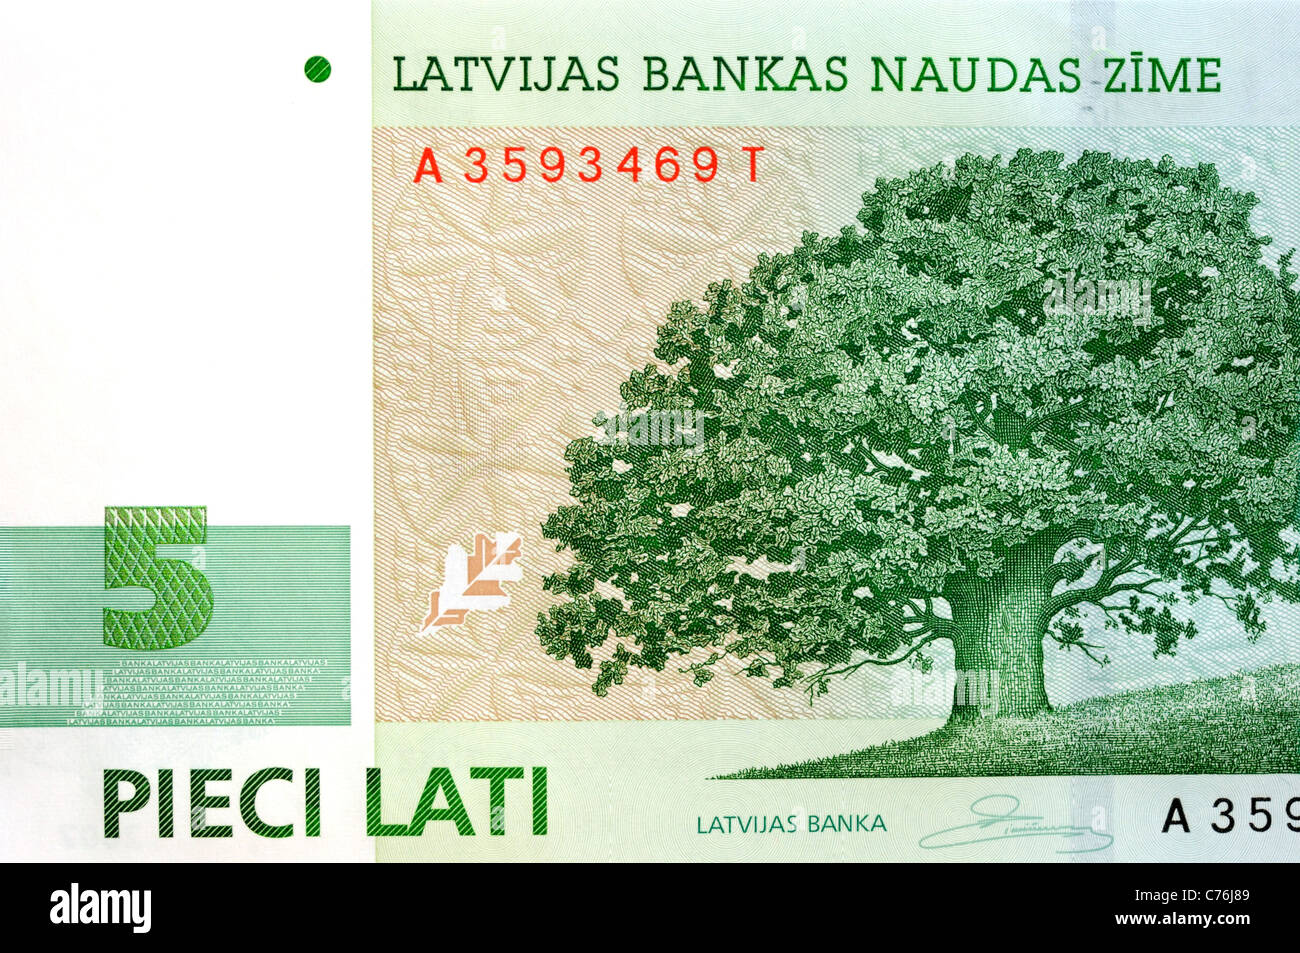 Latvia 5 Five Lati Bank Note. - Stock Image